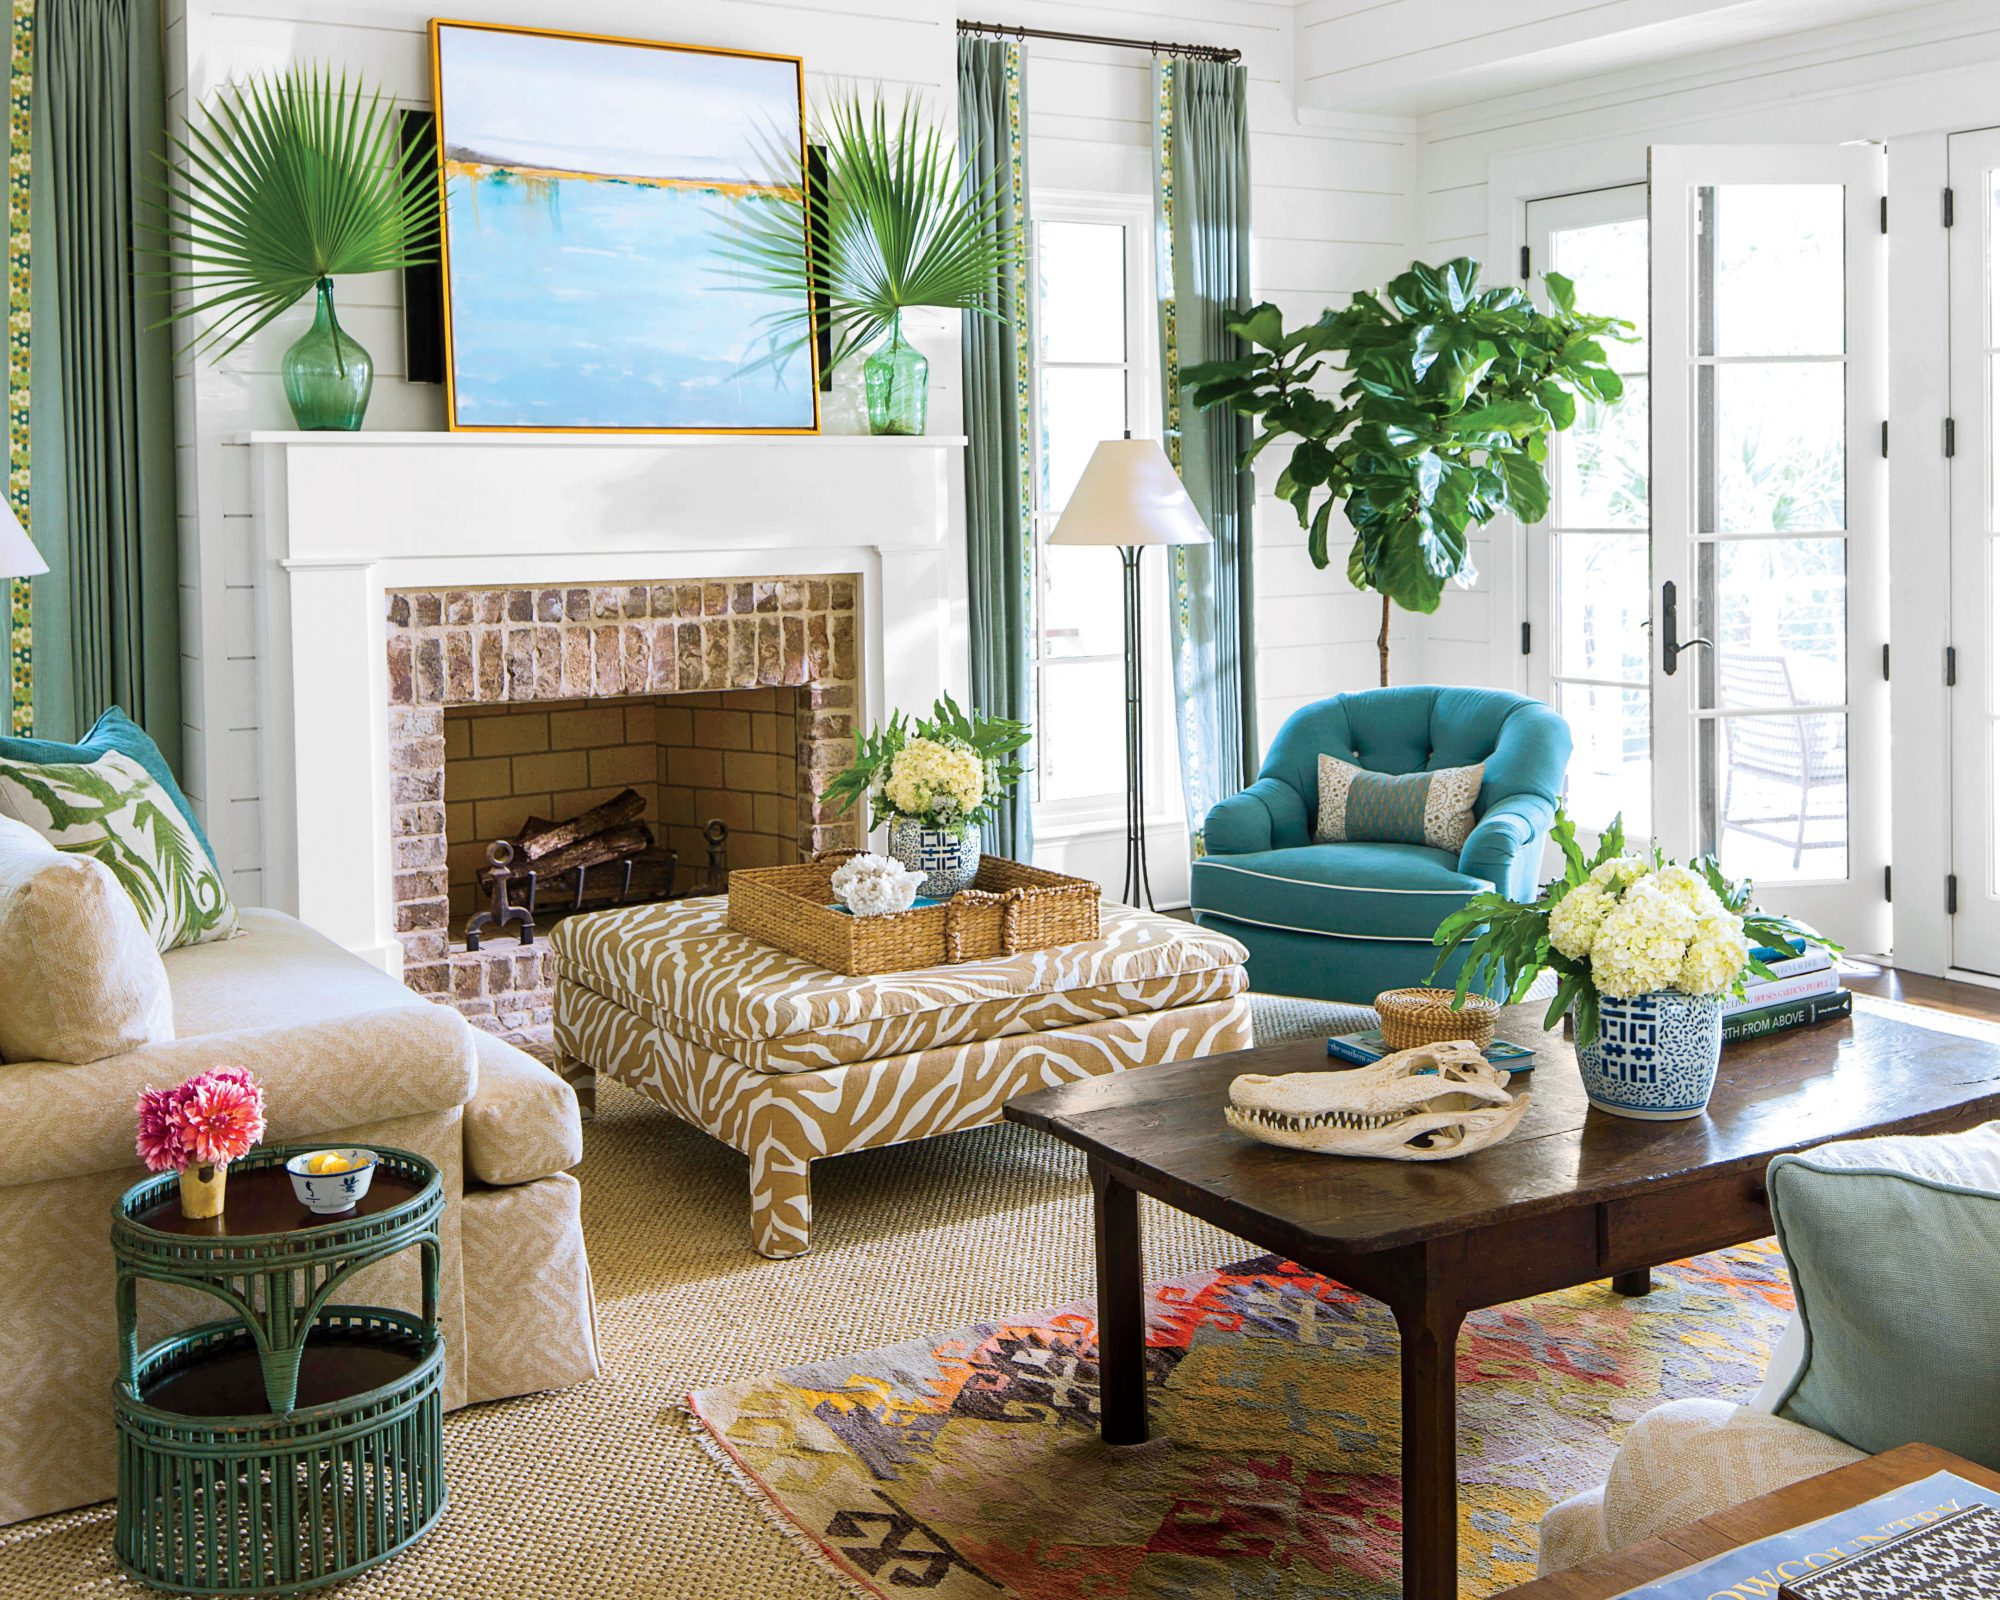 Room Decorating Ideas 106 living room decorating ideas - southern living